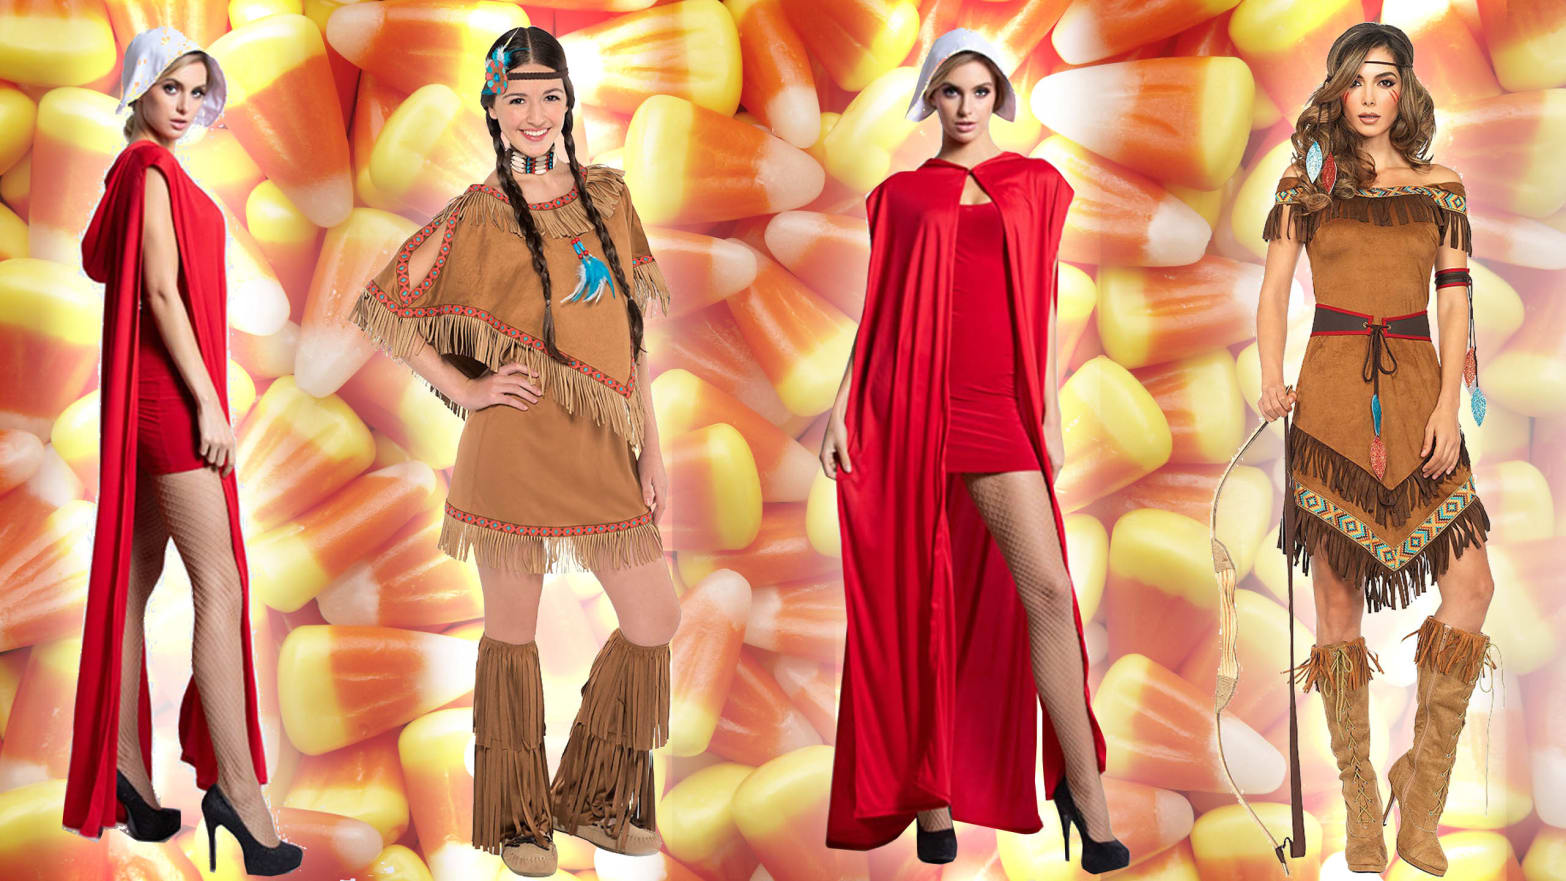 82939f8c434 The 'Sexy' Halloween Costumes That Controversy Cannot Kill